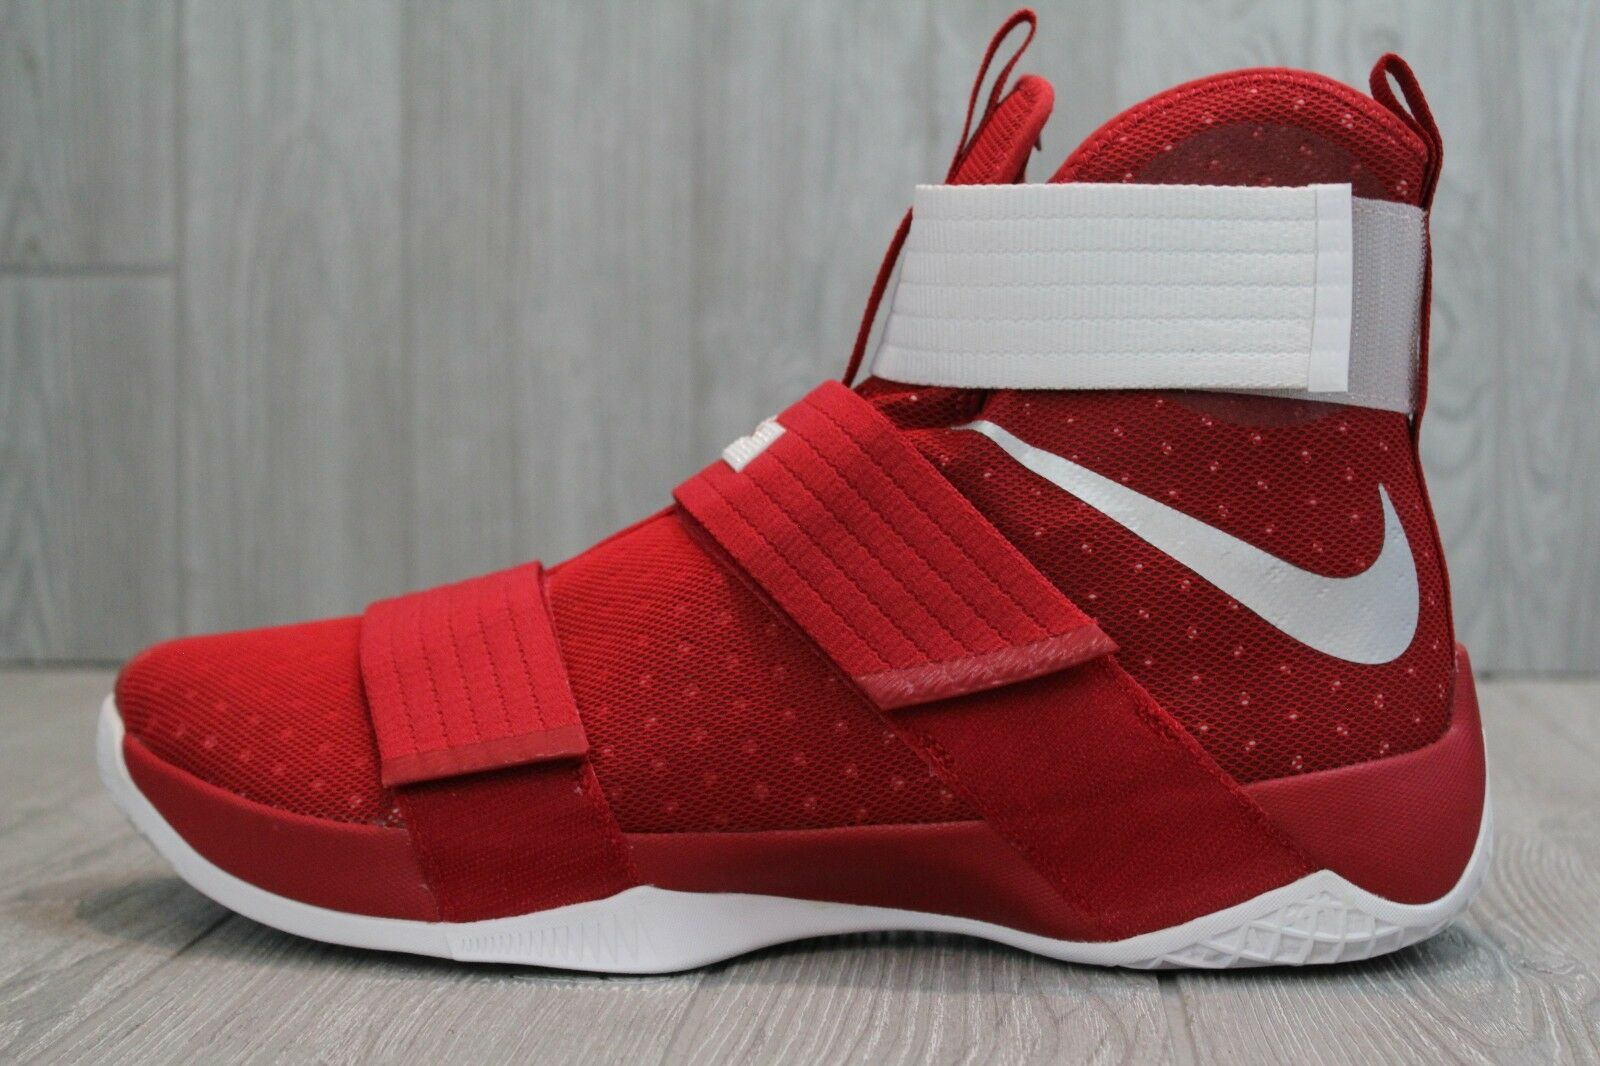 36 NIKE LEBRON SOLDIER 10 TB PROMO GYM RED WHITE SHOES 13, 14, 15.5 856489-661